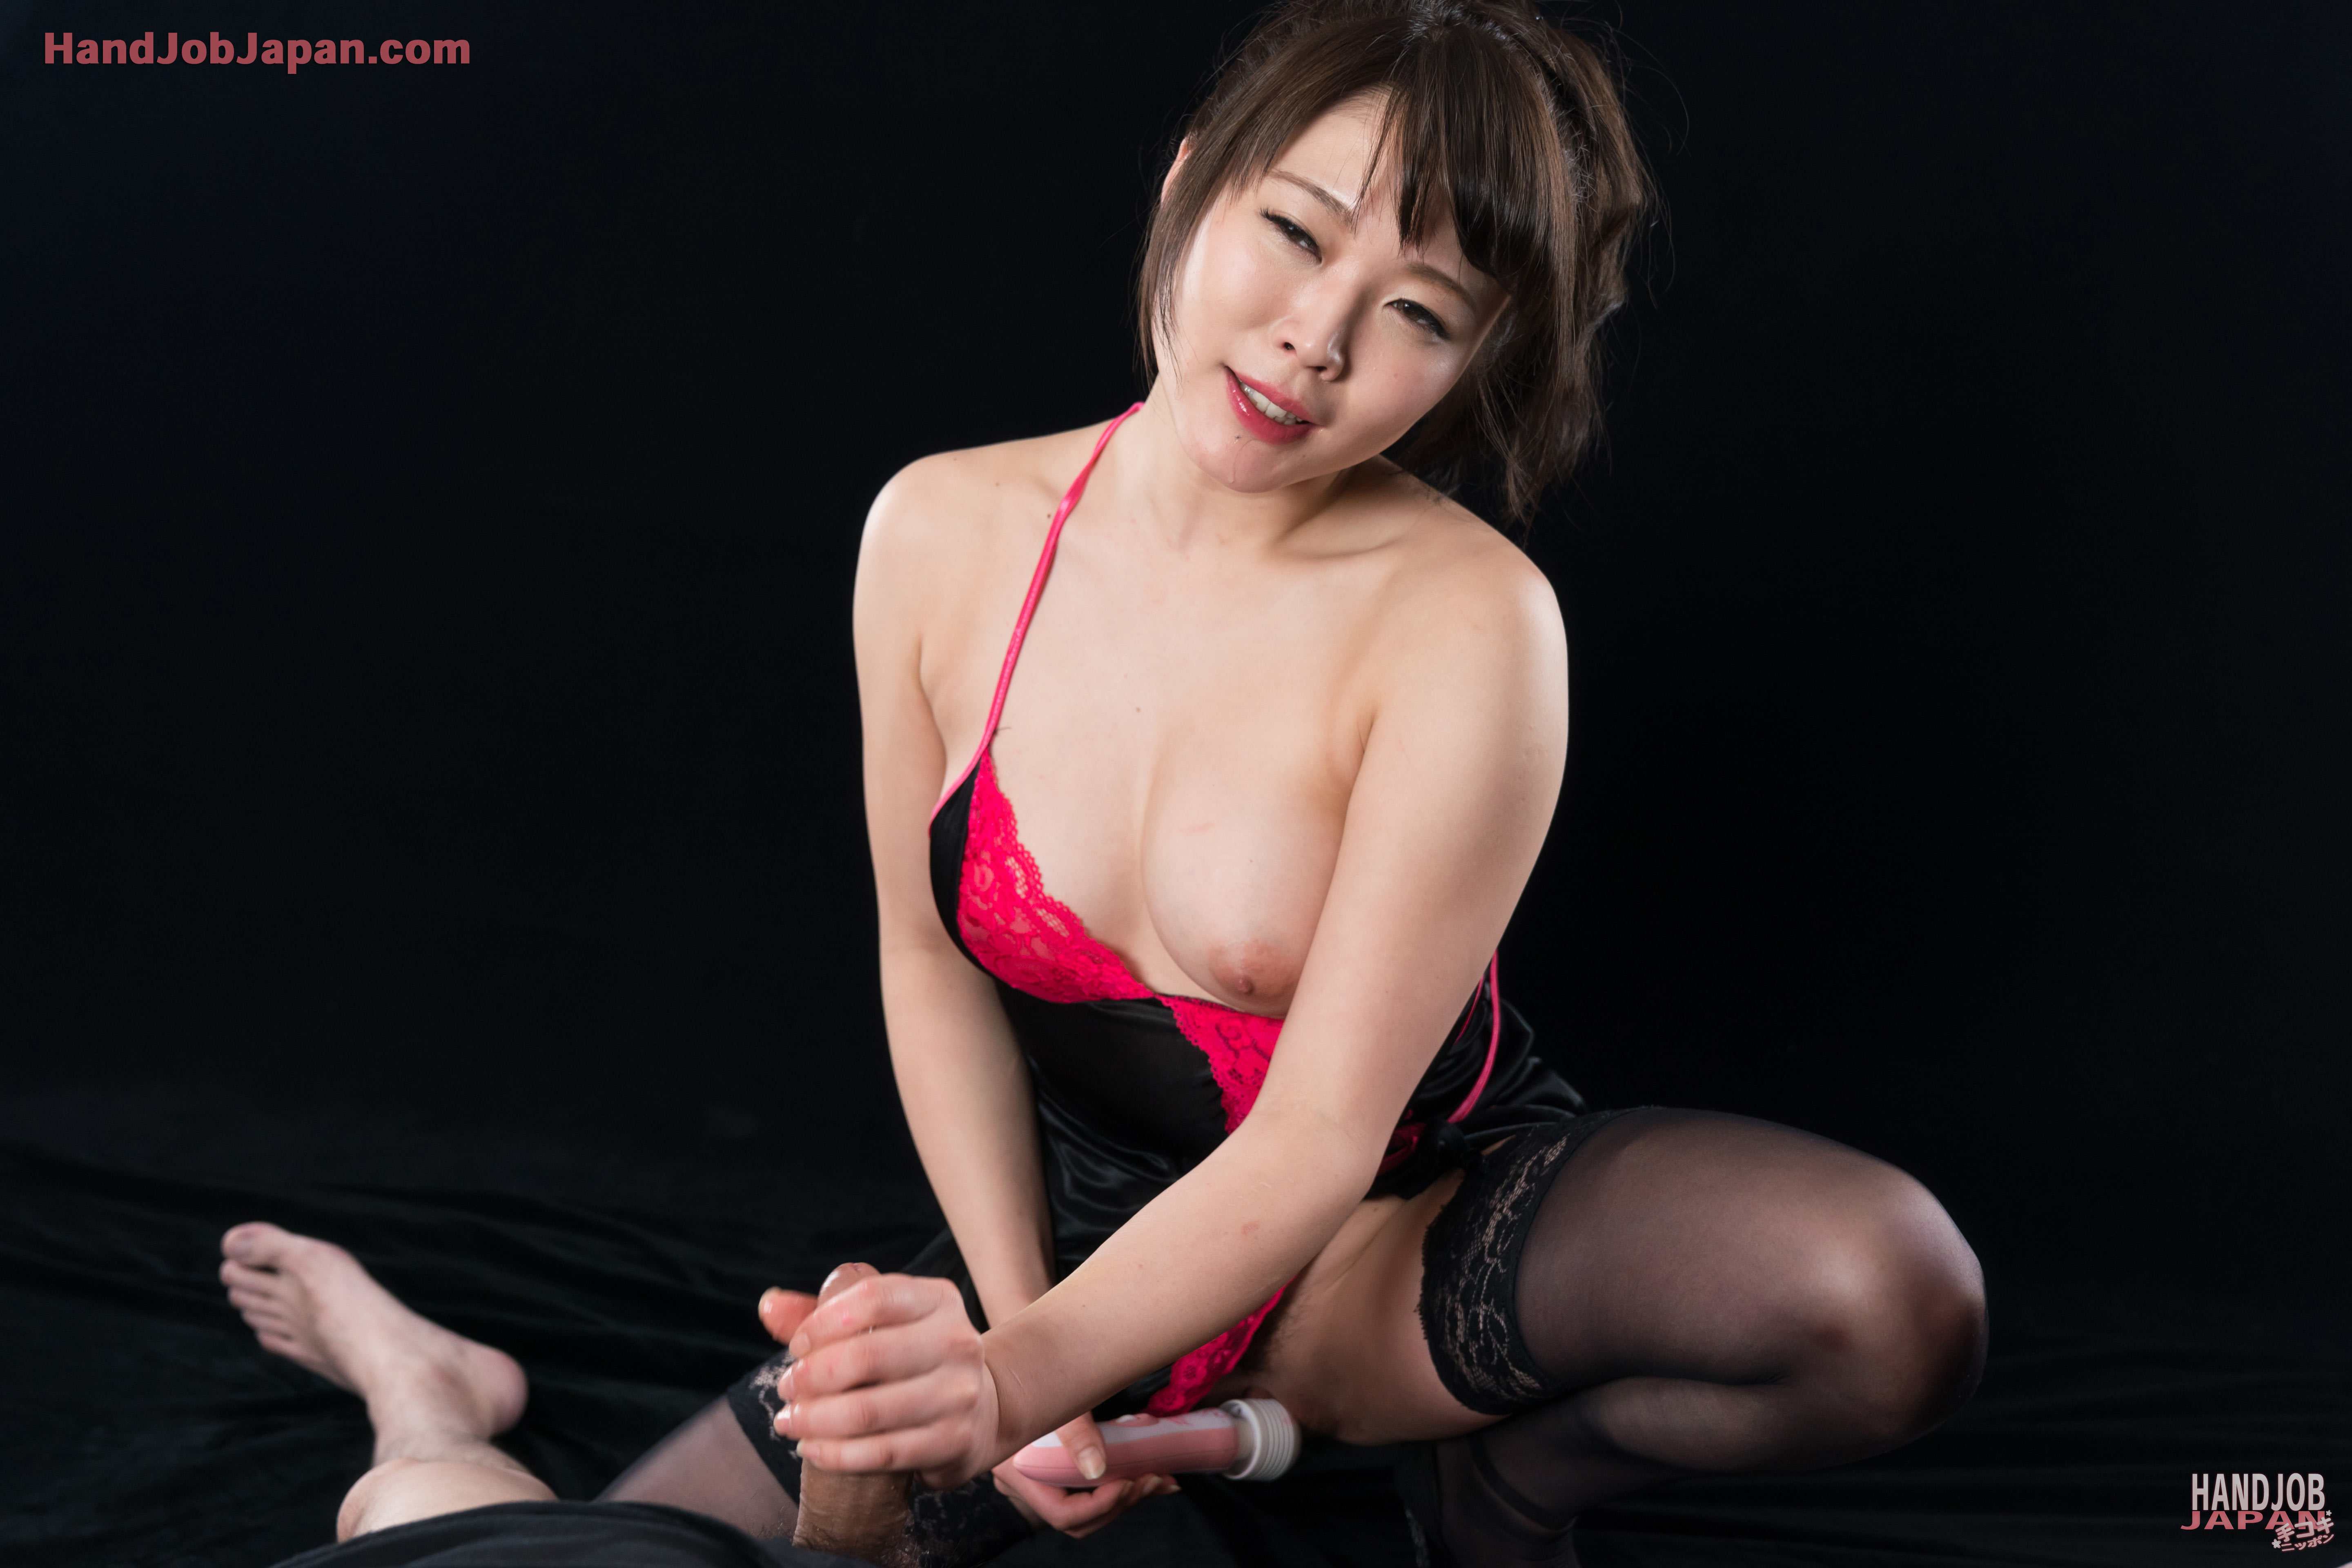 Adult chat shows